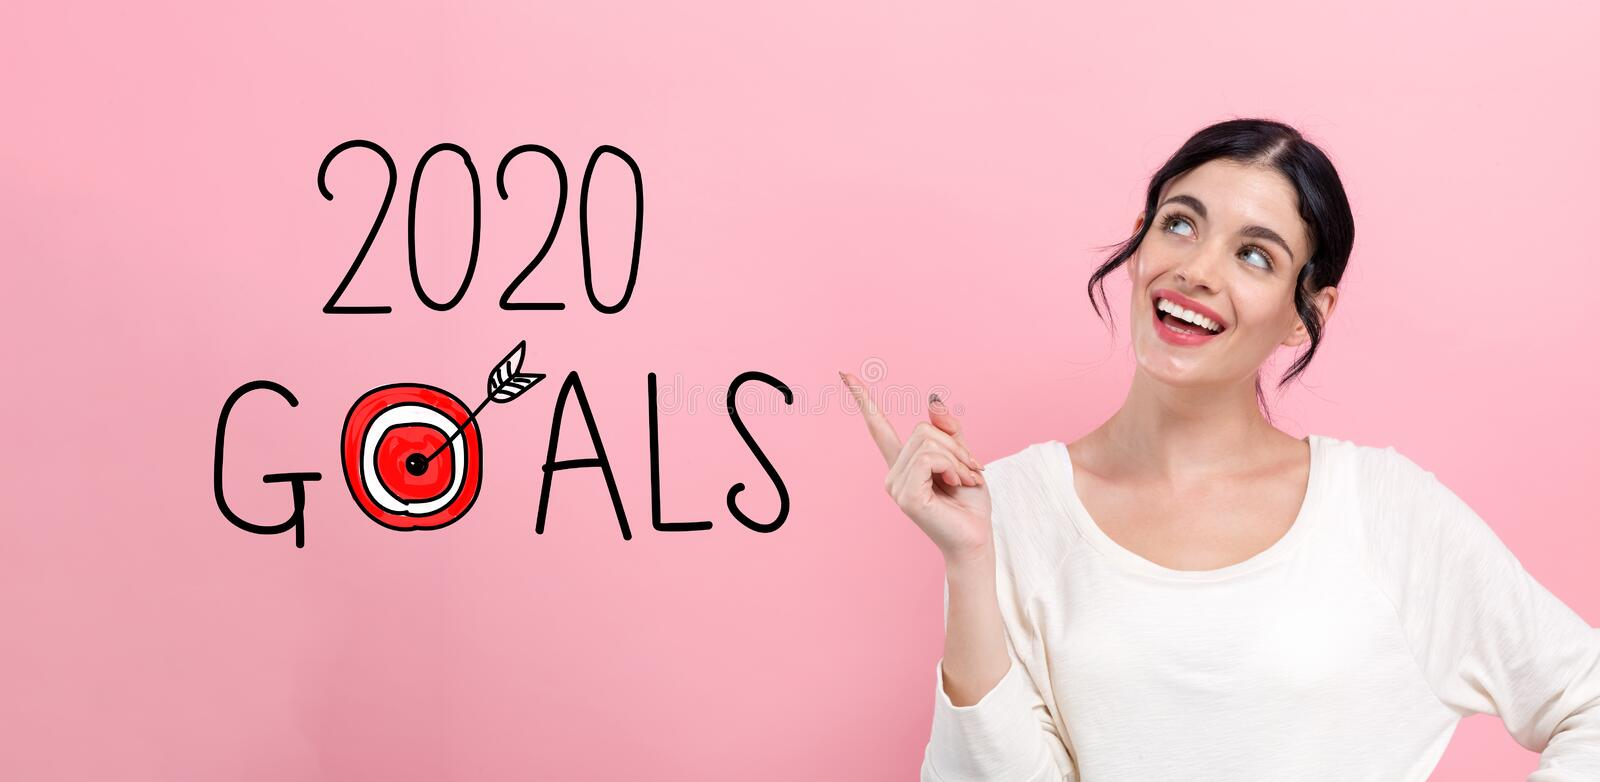 2020 goals concept with young woman royalty free stock images